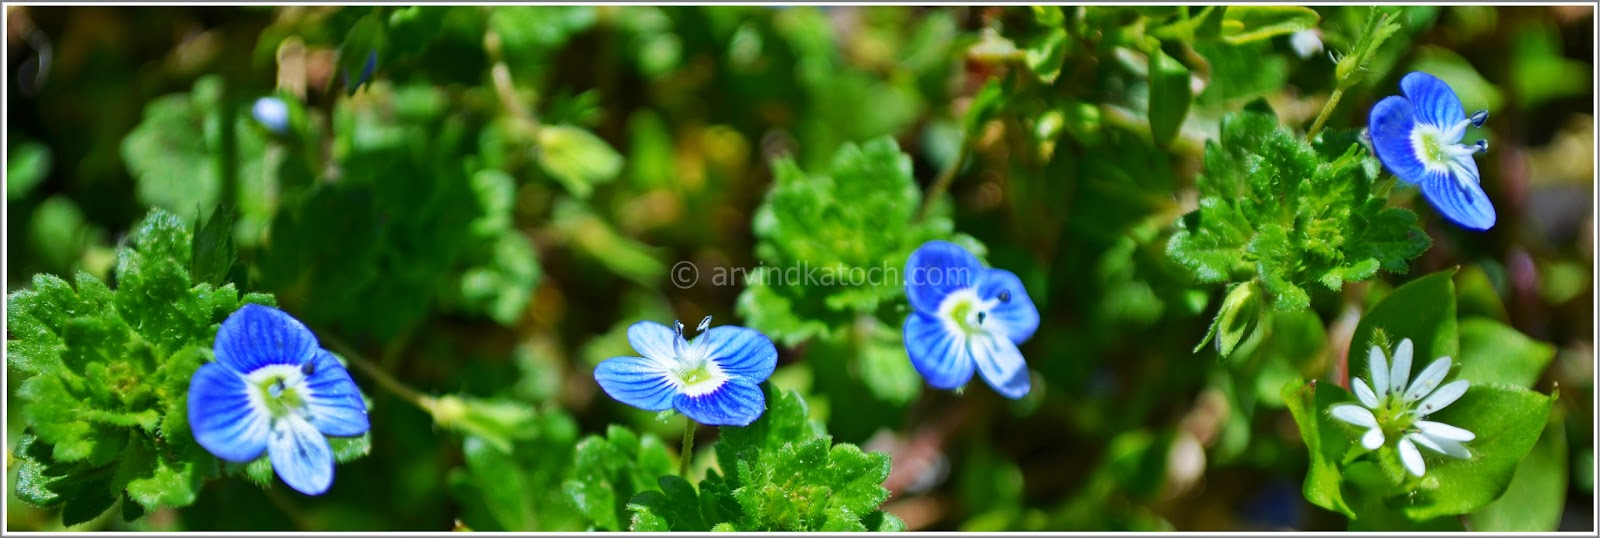 Tiny flowers, Flower world, Blue Flower,